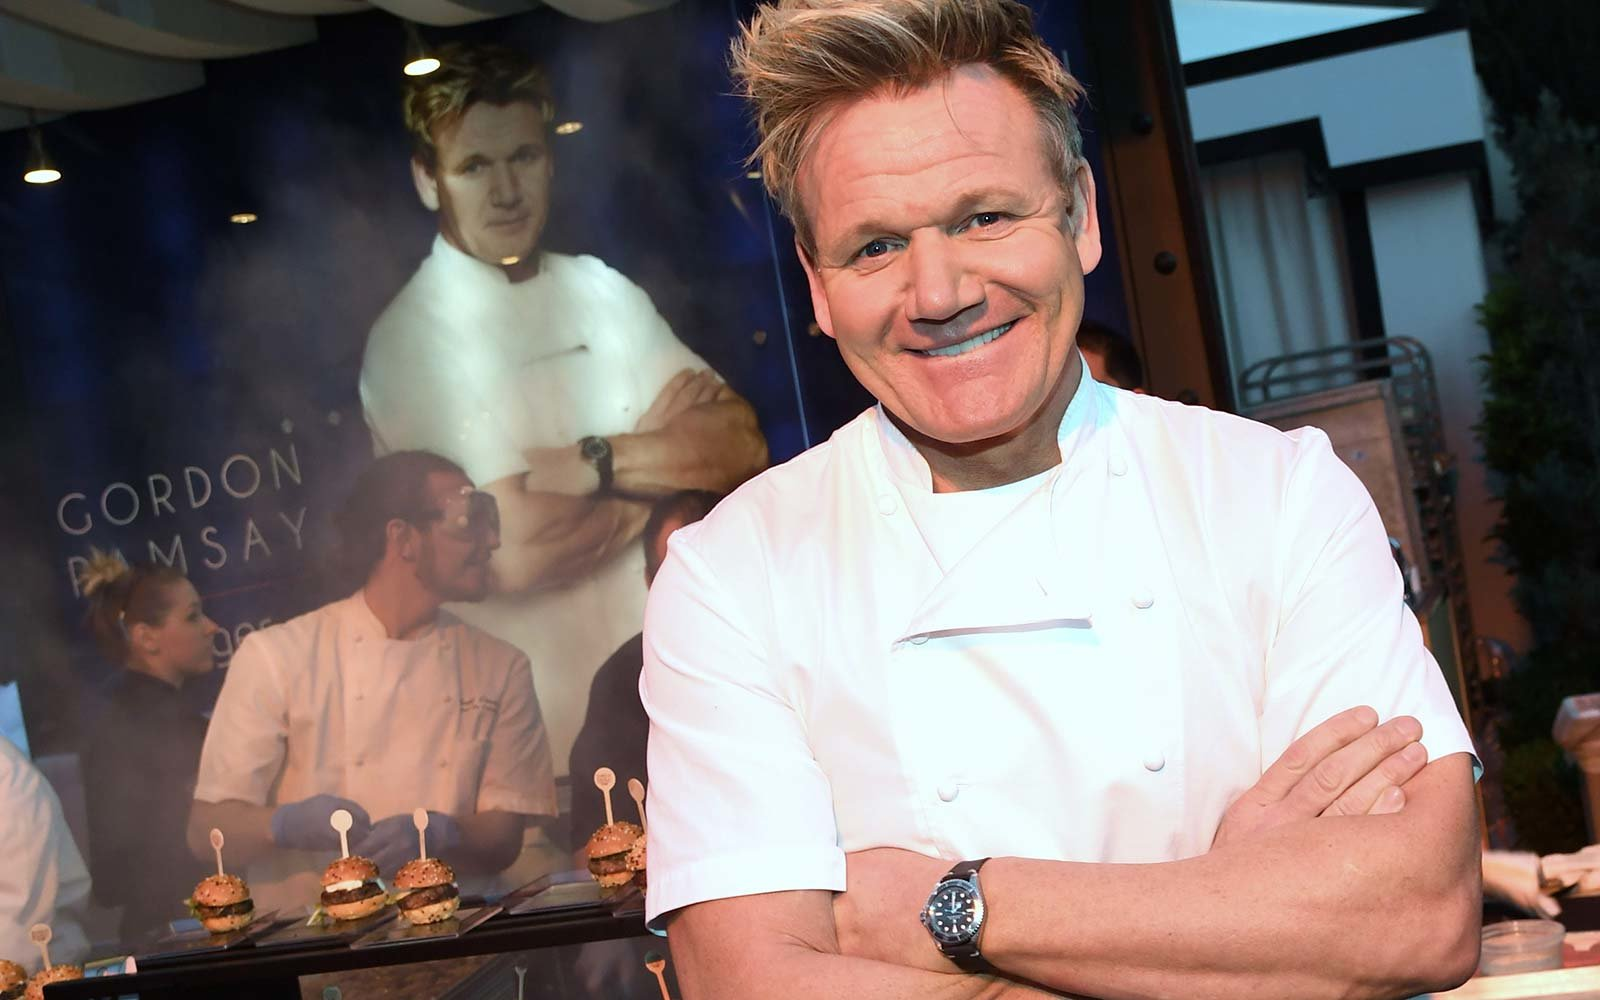 Chef Ramsay smiling